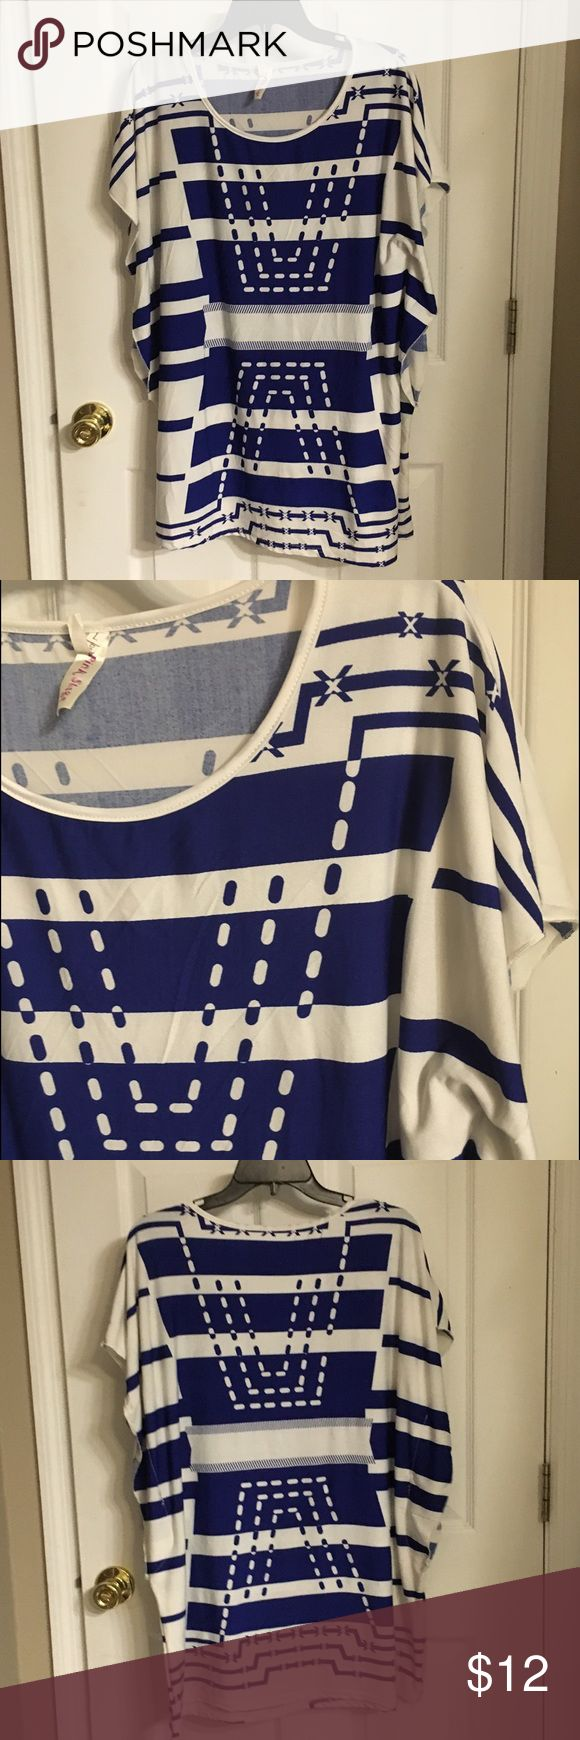 "Blue & White Batwing Top Cute top with batwing sleeve and longer length. Made of soft stretchy material. I call this my ""R2D2 shirt."" Received lots of complements in this one! Gently used but still in great condition. Smoke free home. Tops"